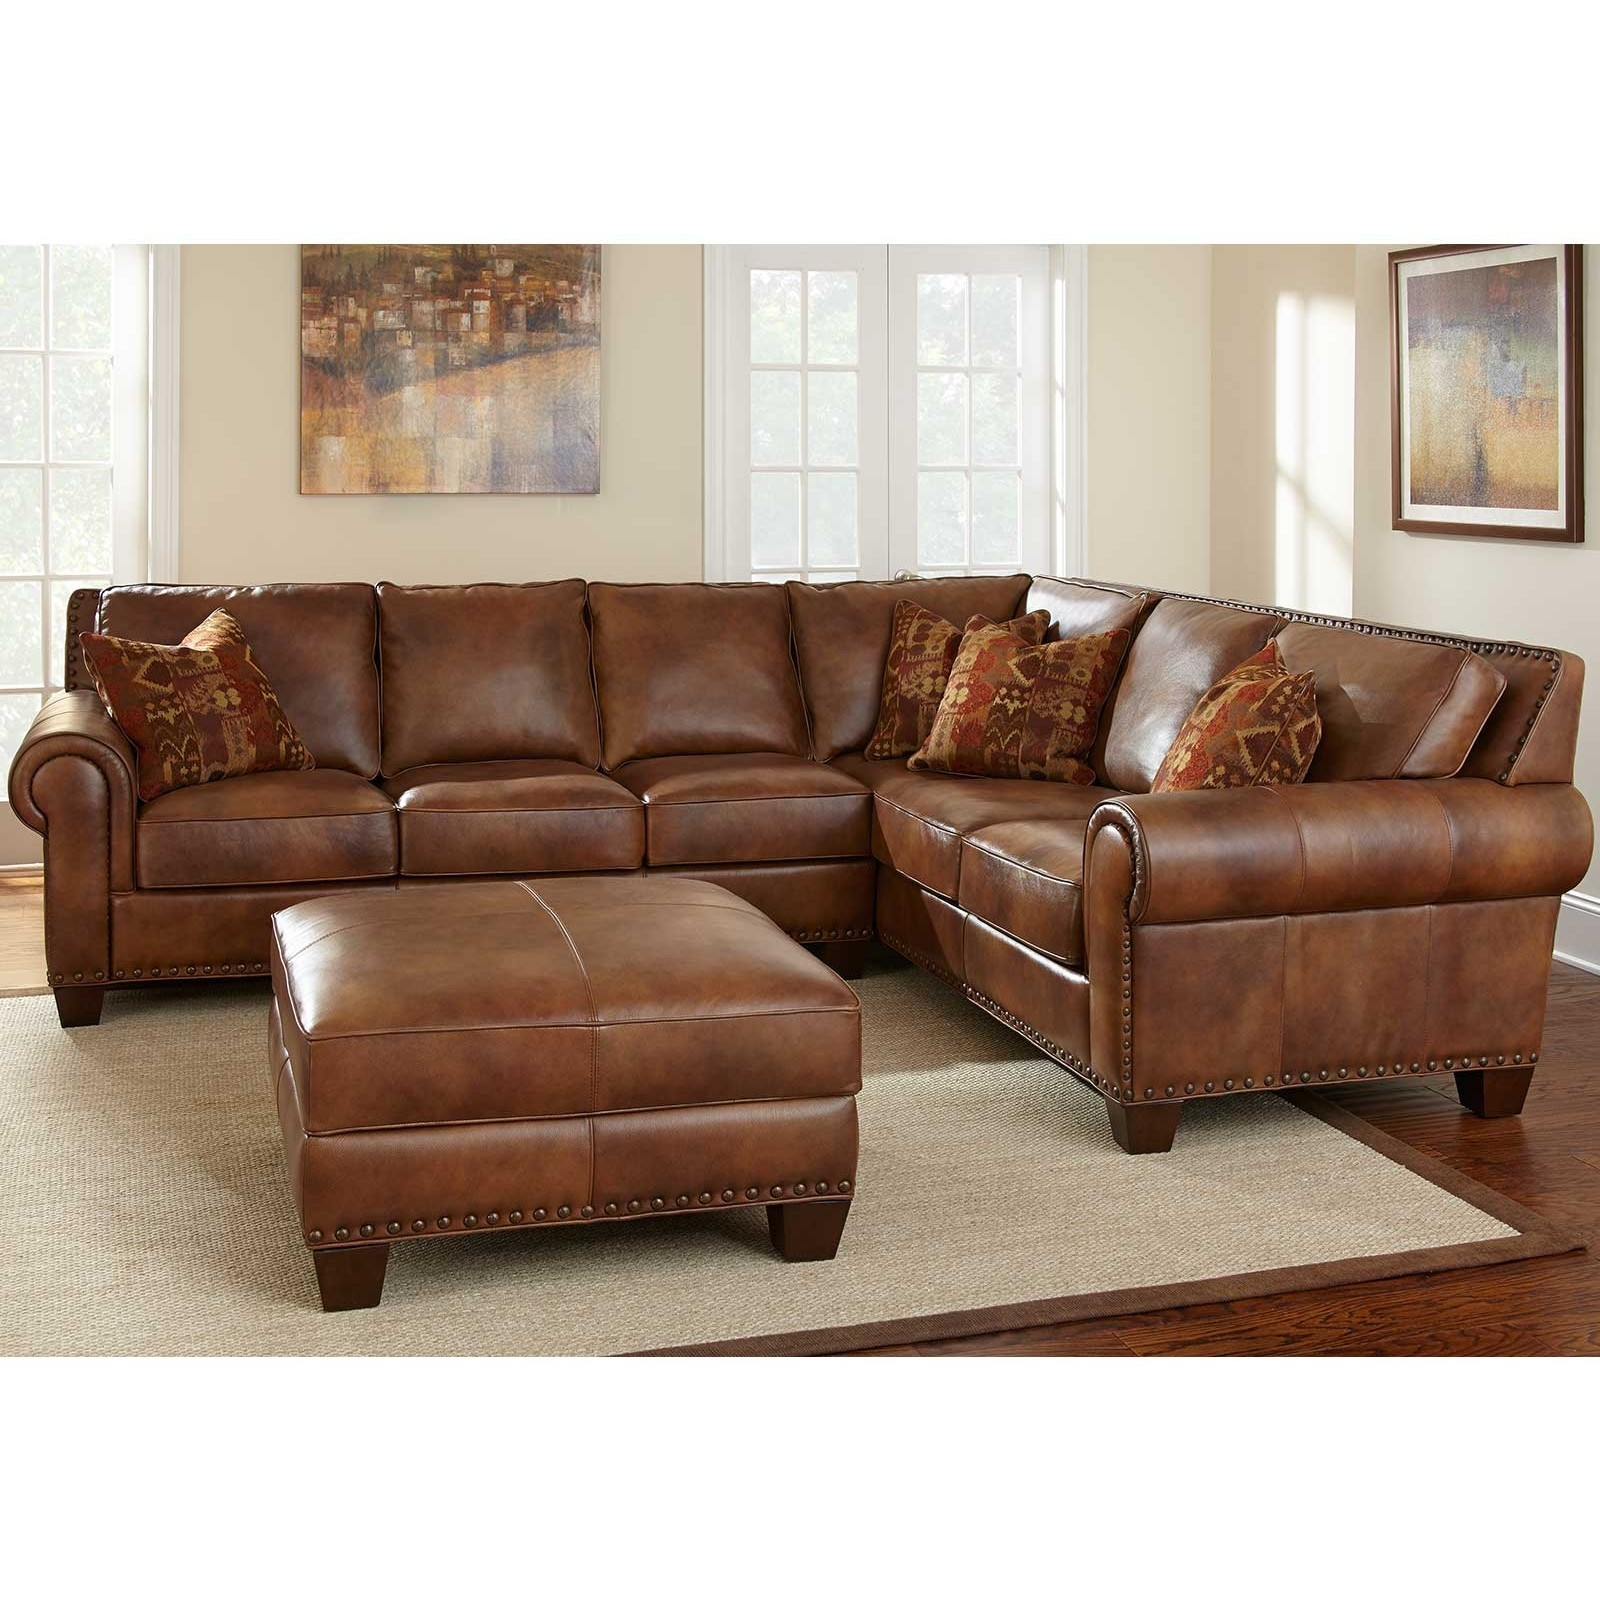 Sophisticated Sectional Couches for Sale for Home Furniture Ideas: Attractive Sectional Couches For Sale With Cushions And Wooden Legs For Home Interior Ideas With Cheap Sectional Couches For Sale